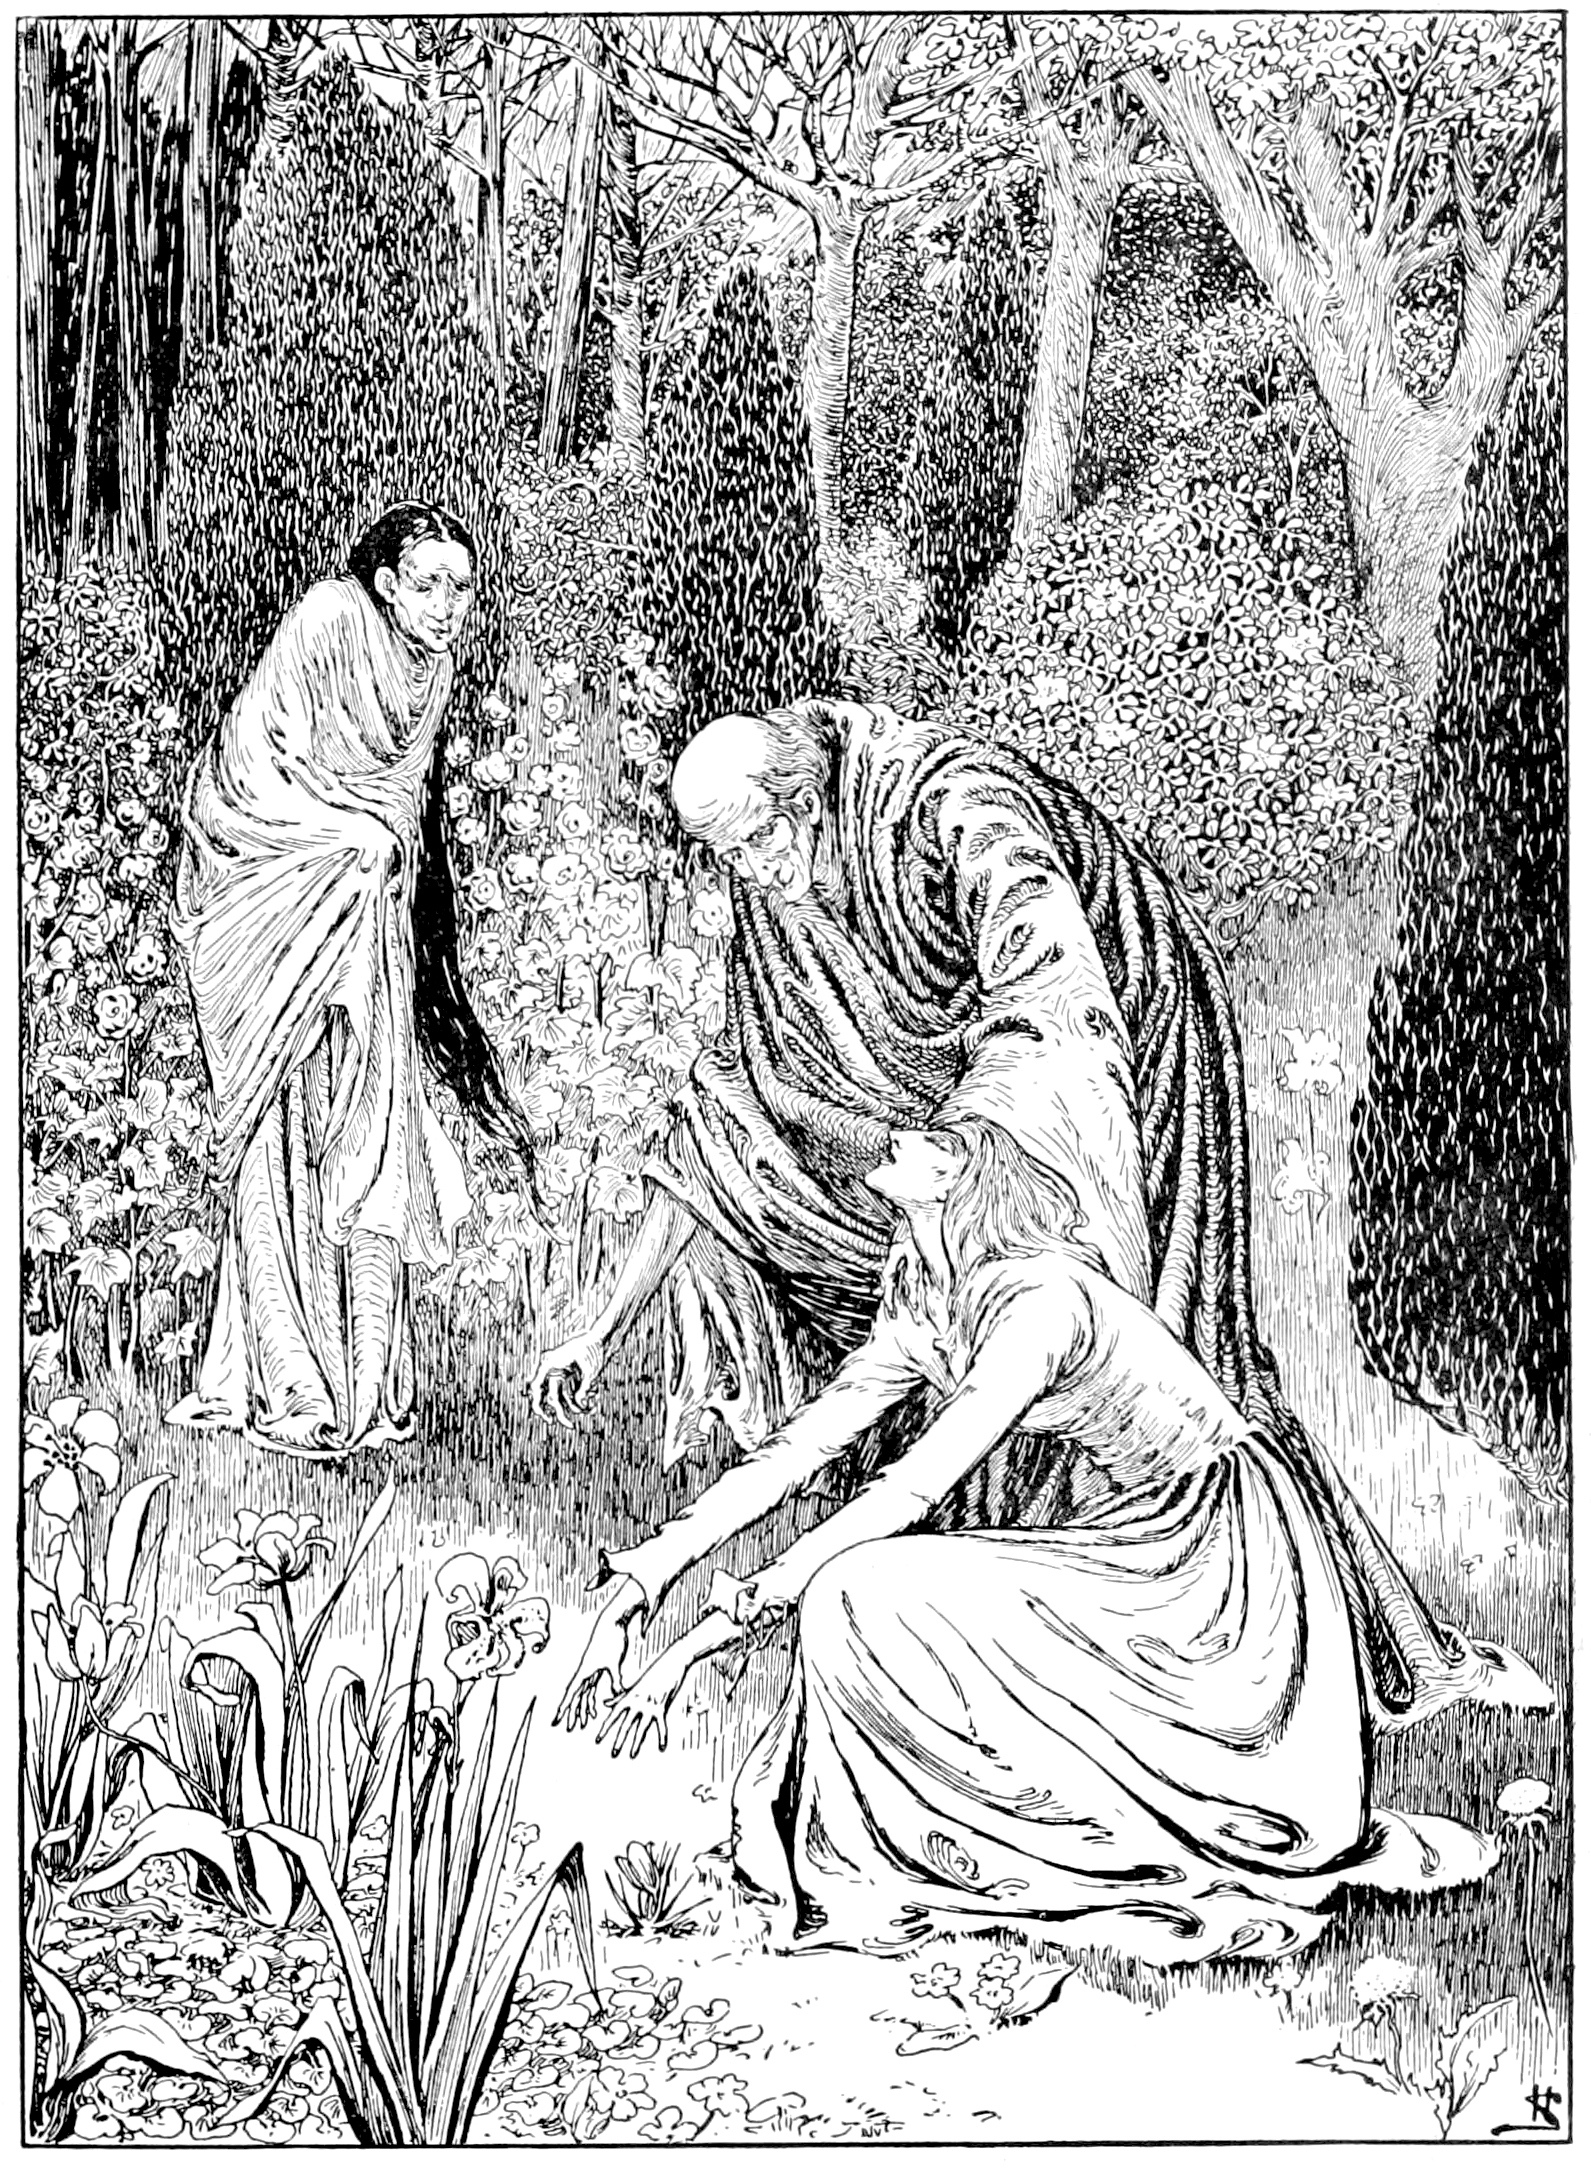 http://upload.wikimedia.org/wikipedia/commons/8/86/Page_223_illustration_in_fairy_tales_of_Andersen_%28Stratton%29.png